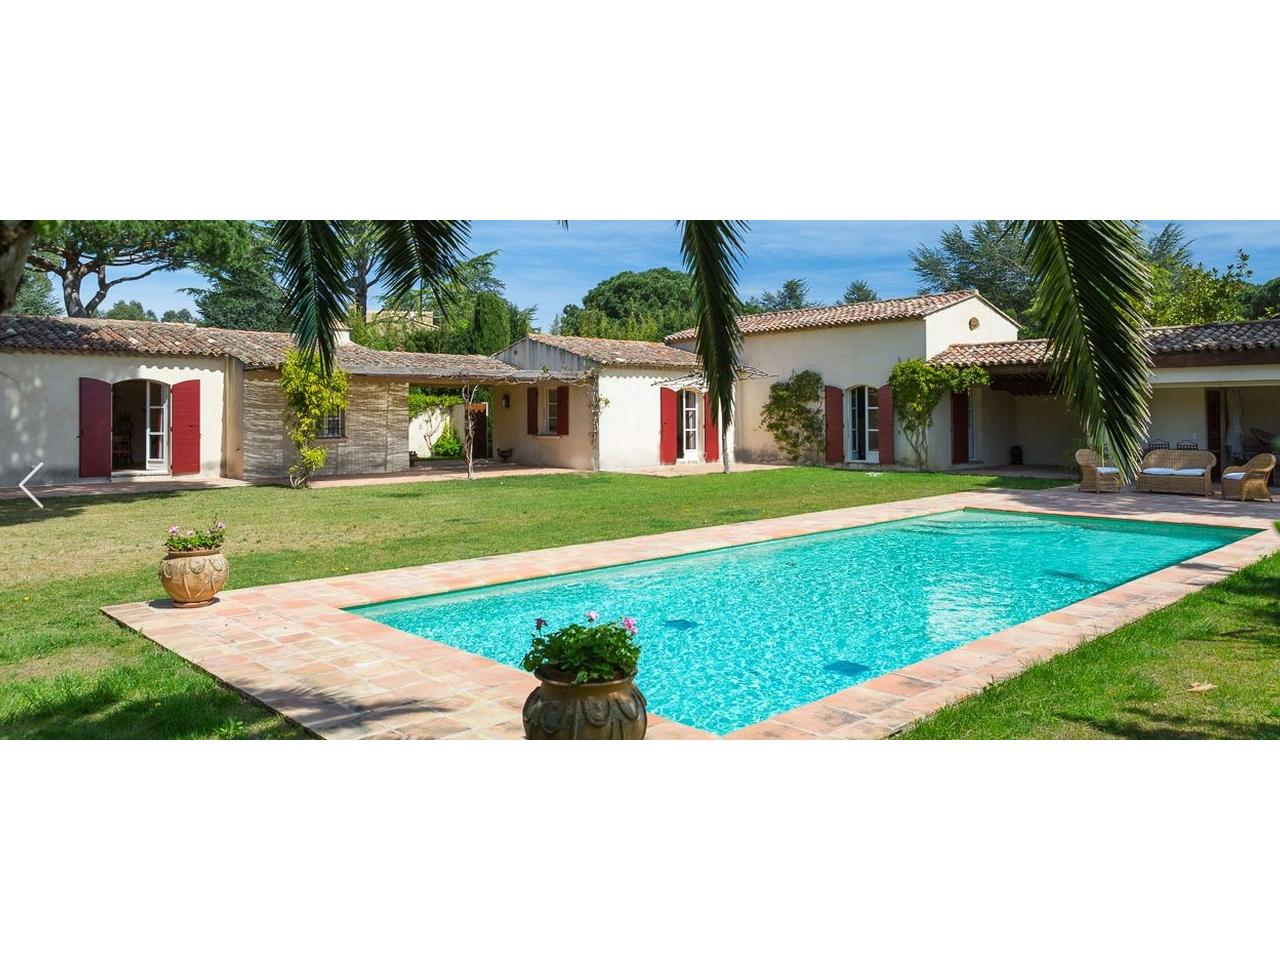 Wonderful bastide surrounded by trees, les Parcs St Tropez